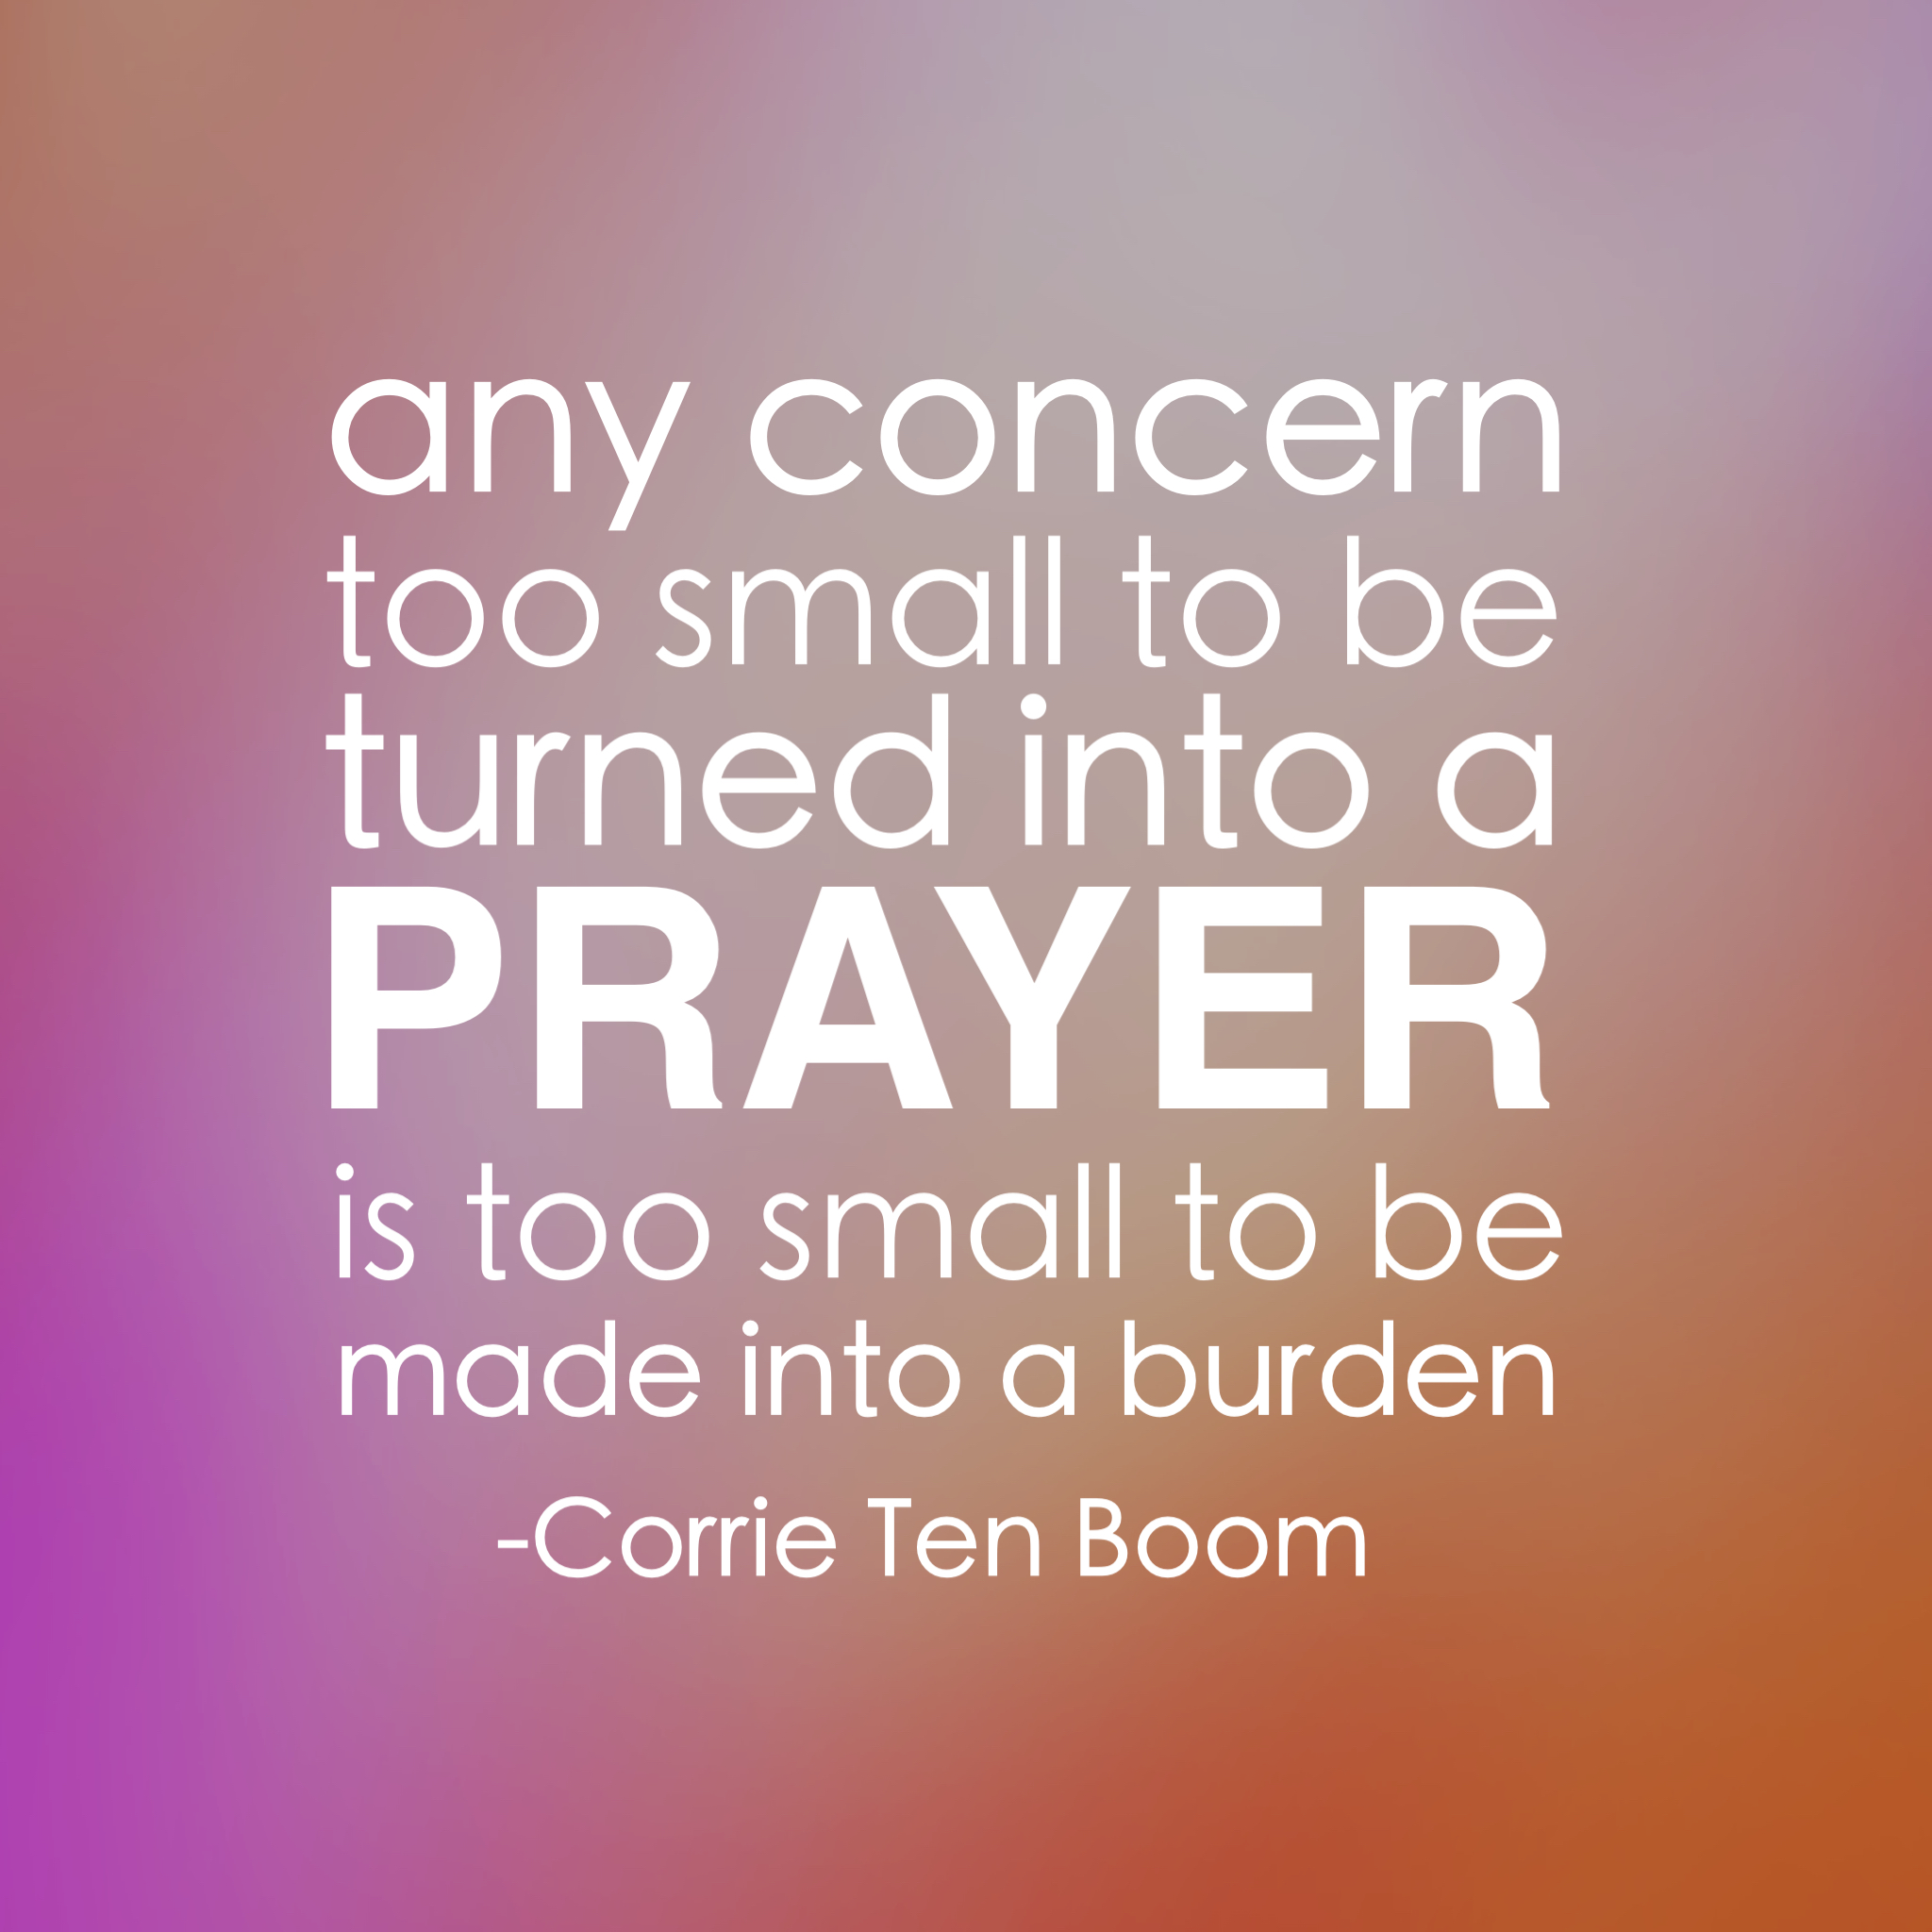 """Any concern too small to be turned into a prayer is too small to be turned into a burden."" -Corrie Ten Boom   Inspire your heart to prayer. www.chereehayes.com"